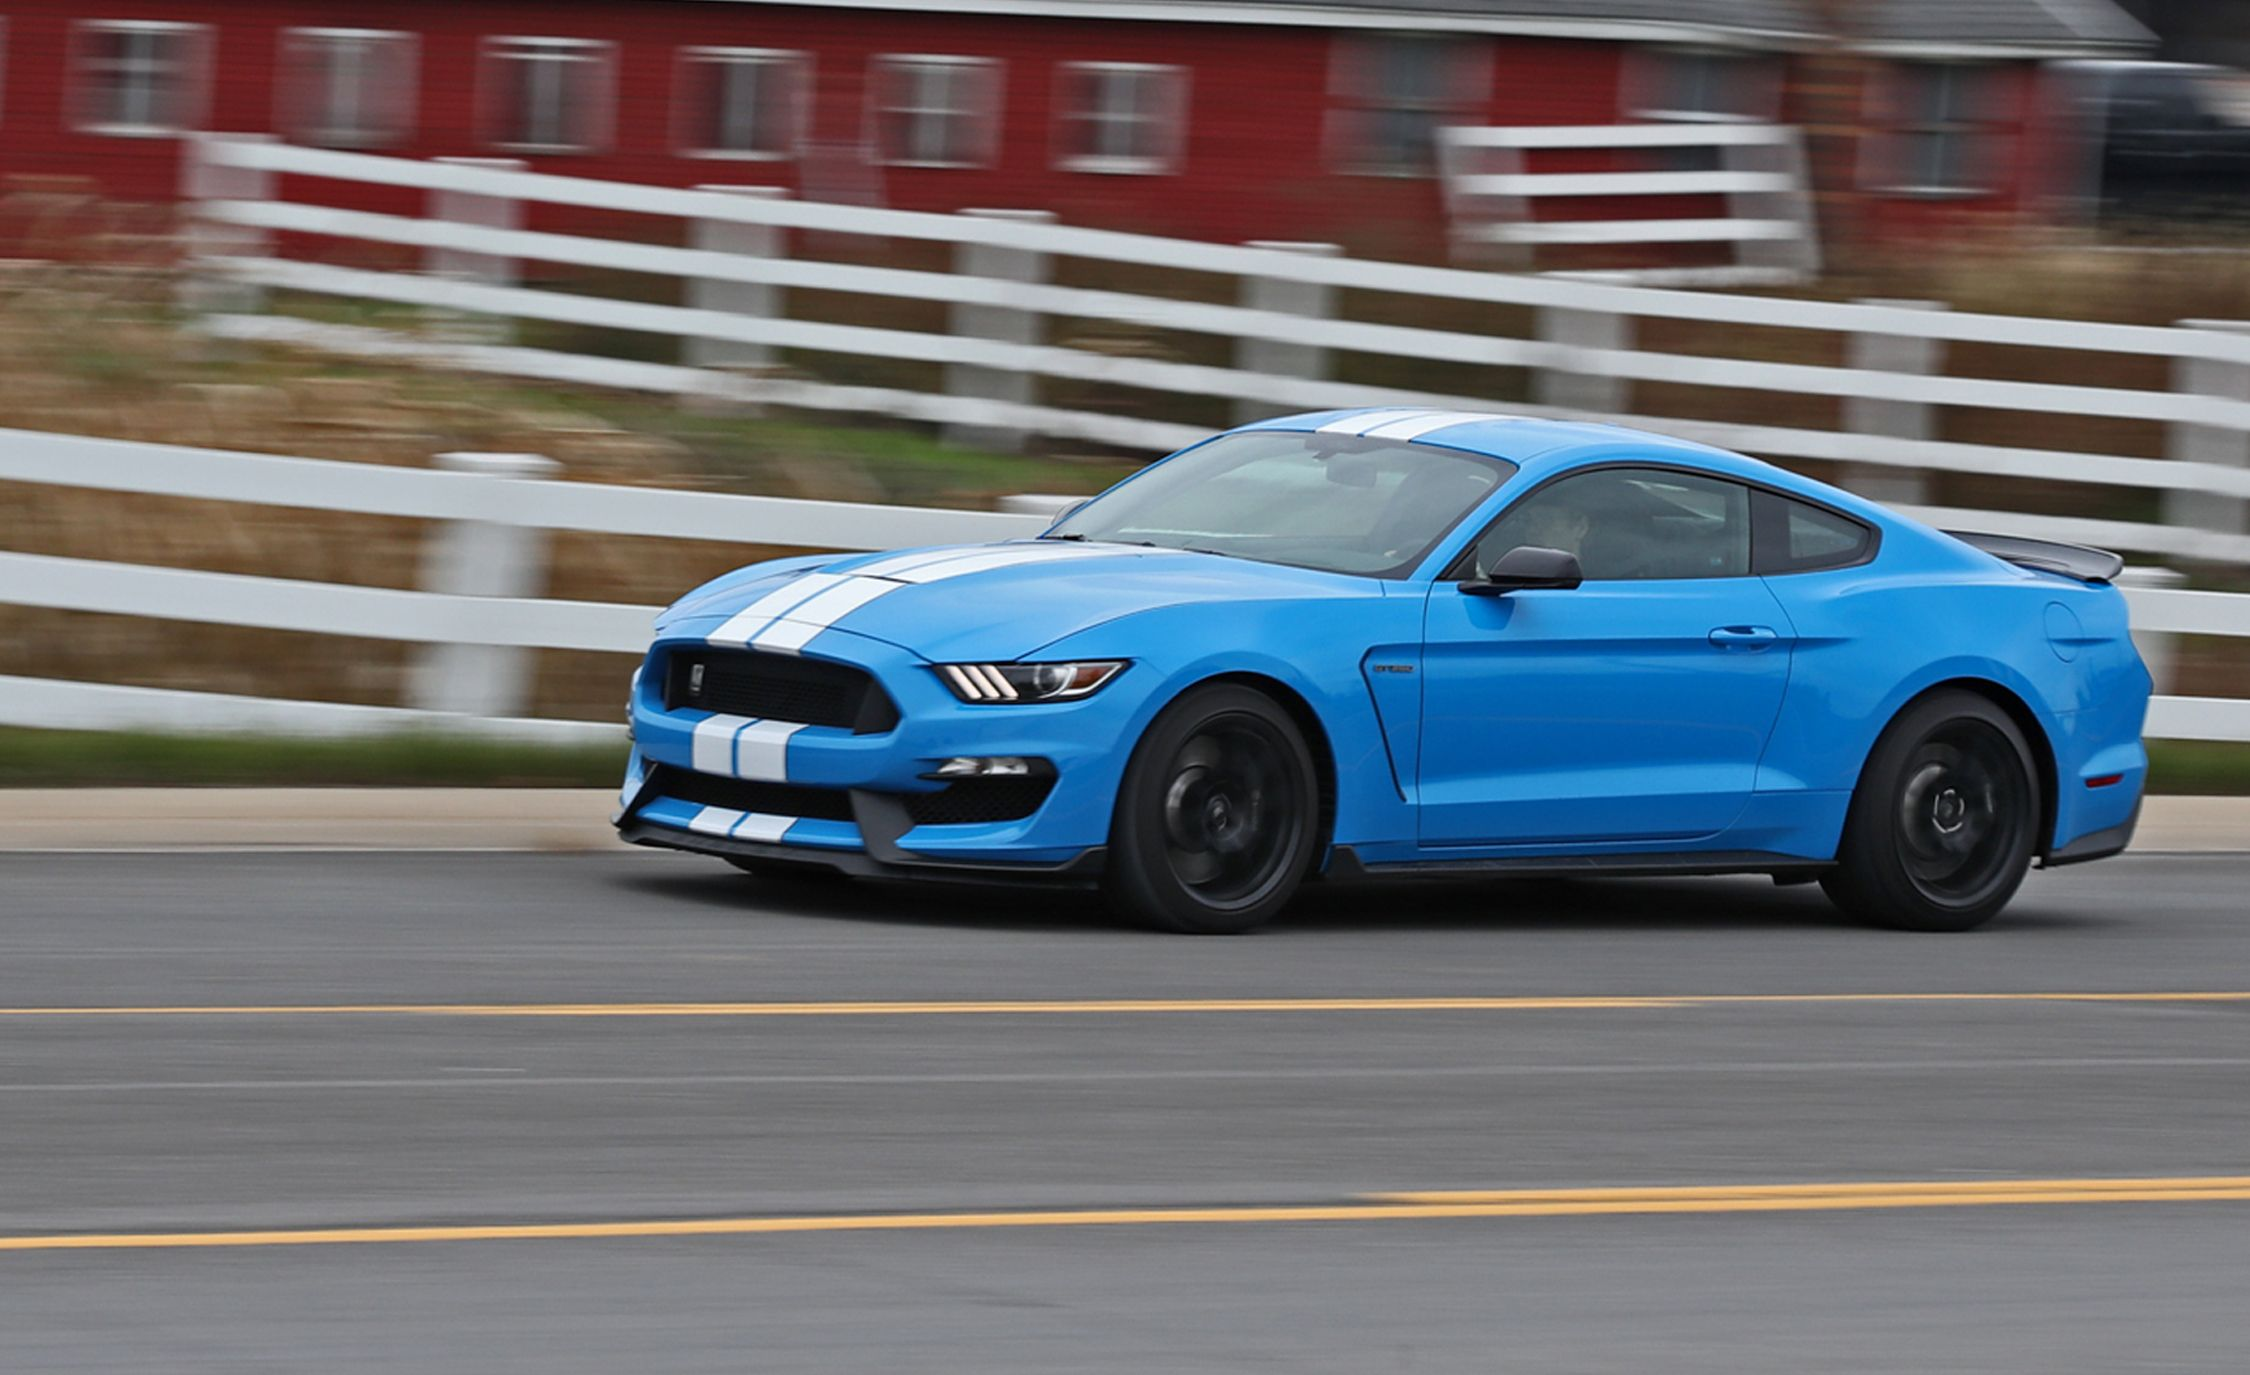 Mustang 2017 Shelby >> 2017 Ford Mustang Shelby Gt350 Long Term Test Update Review